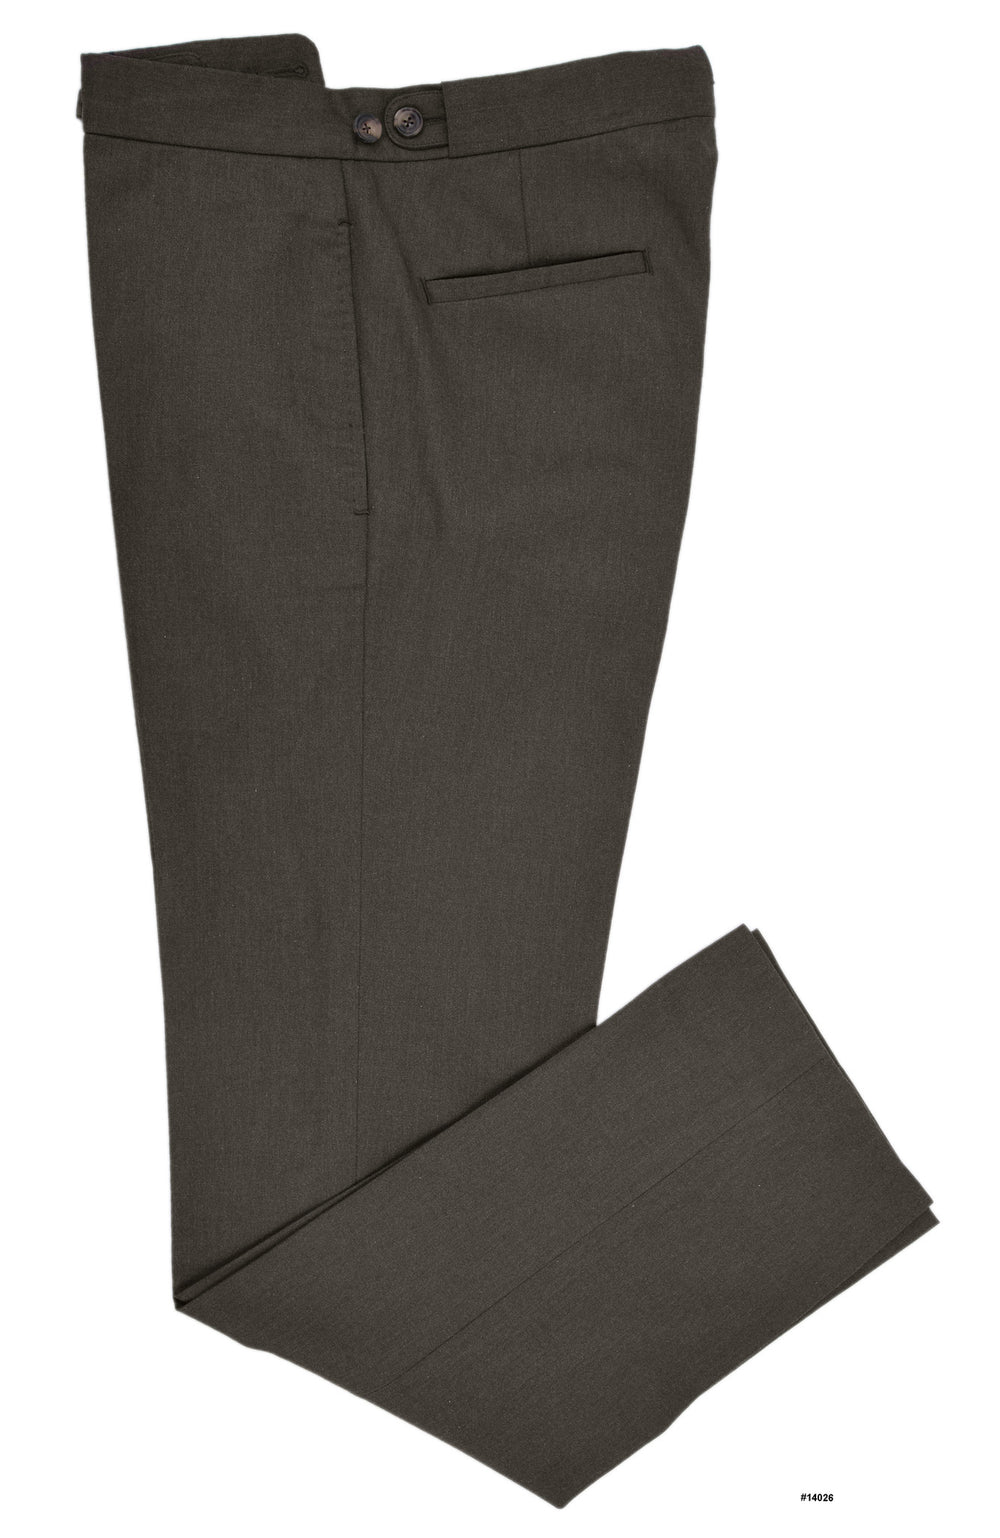 Soft Brown Cotton Twill  Pants SOLD OUT